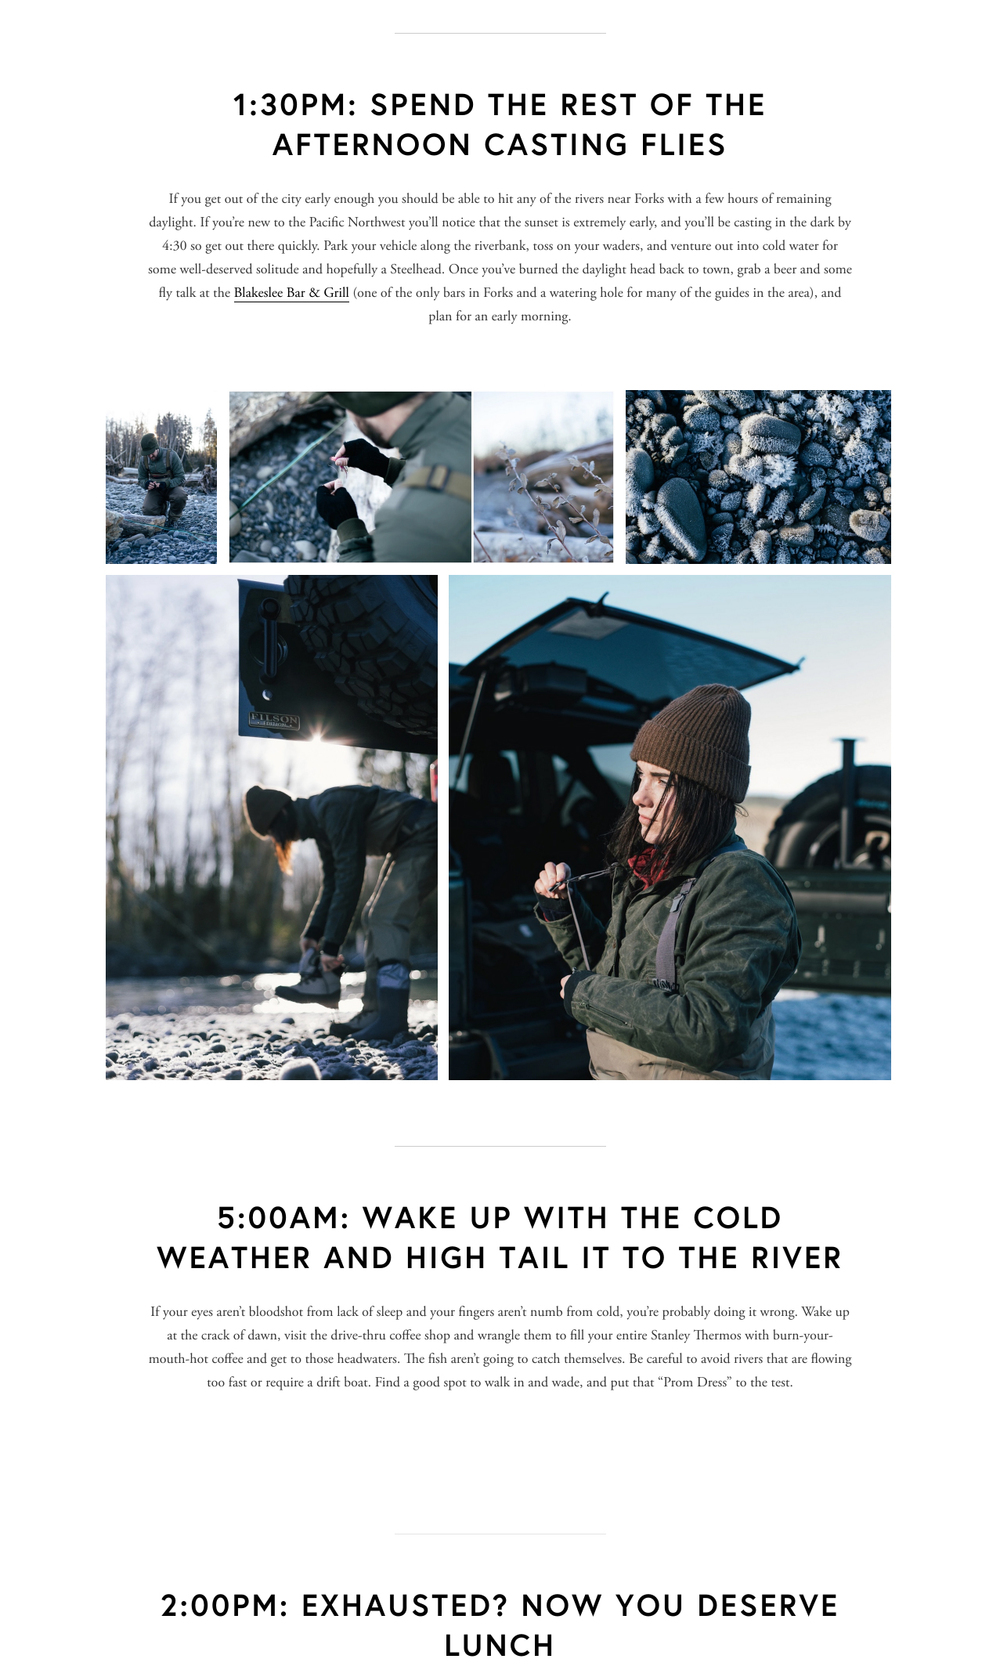 A snippet of the story published on Filson's Exposure page